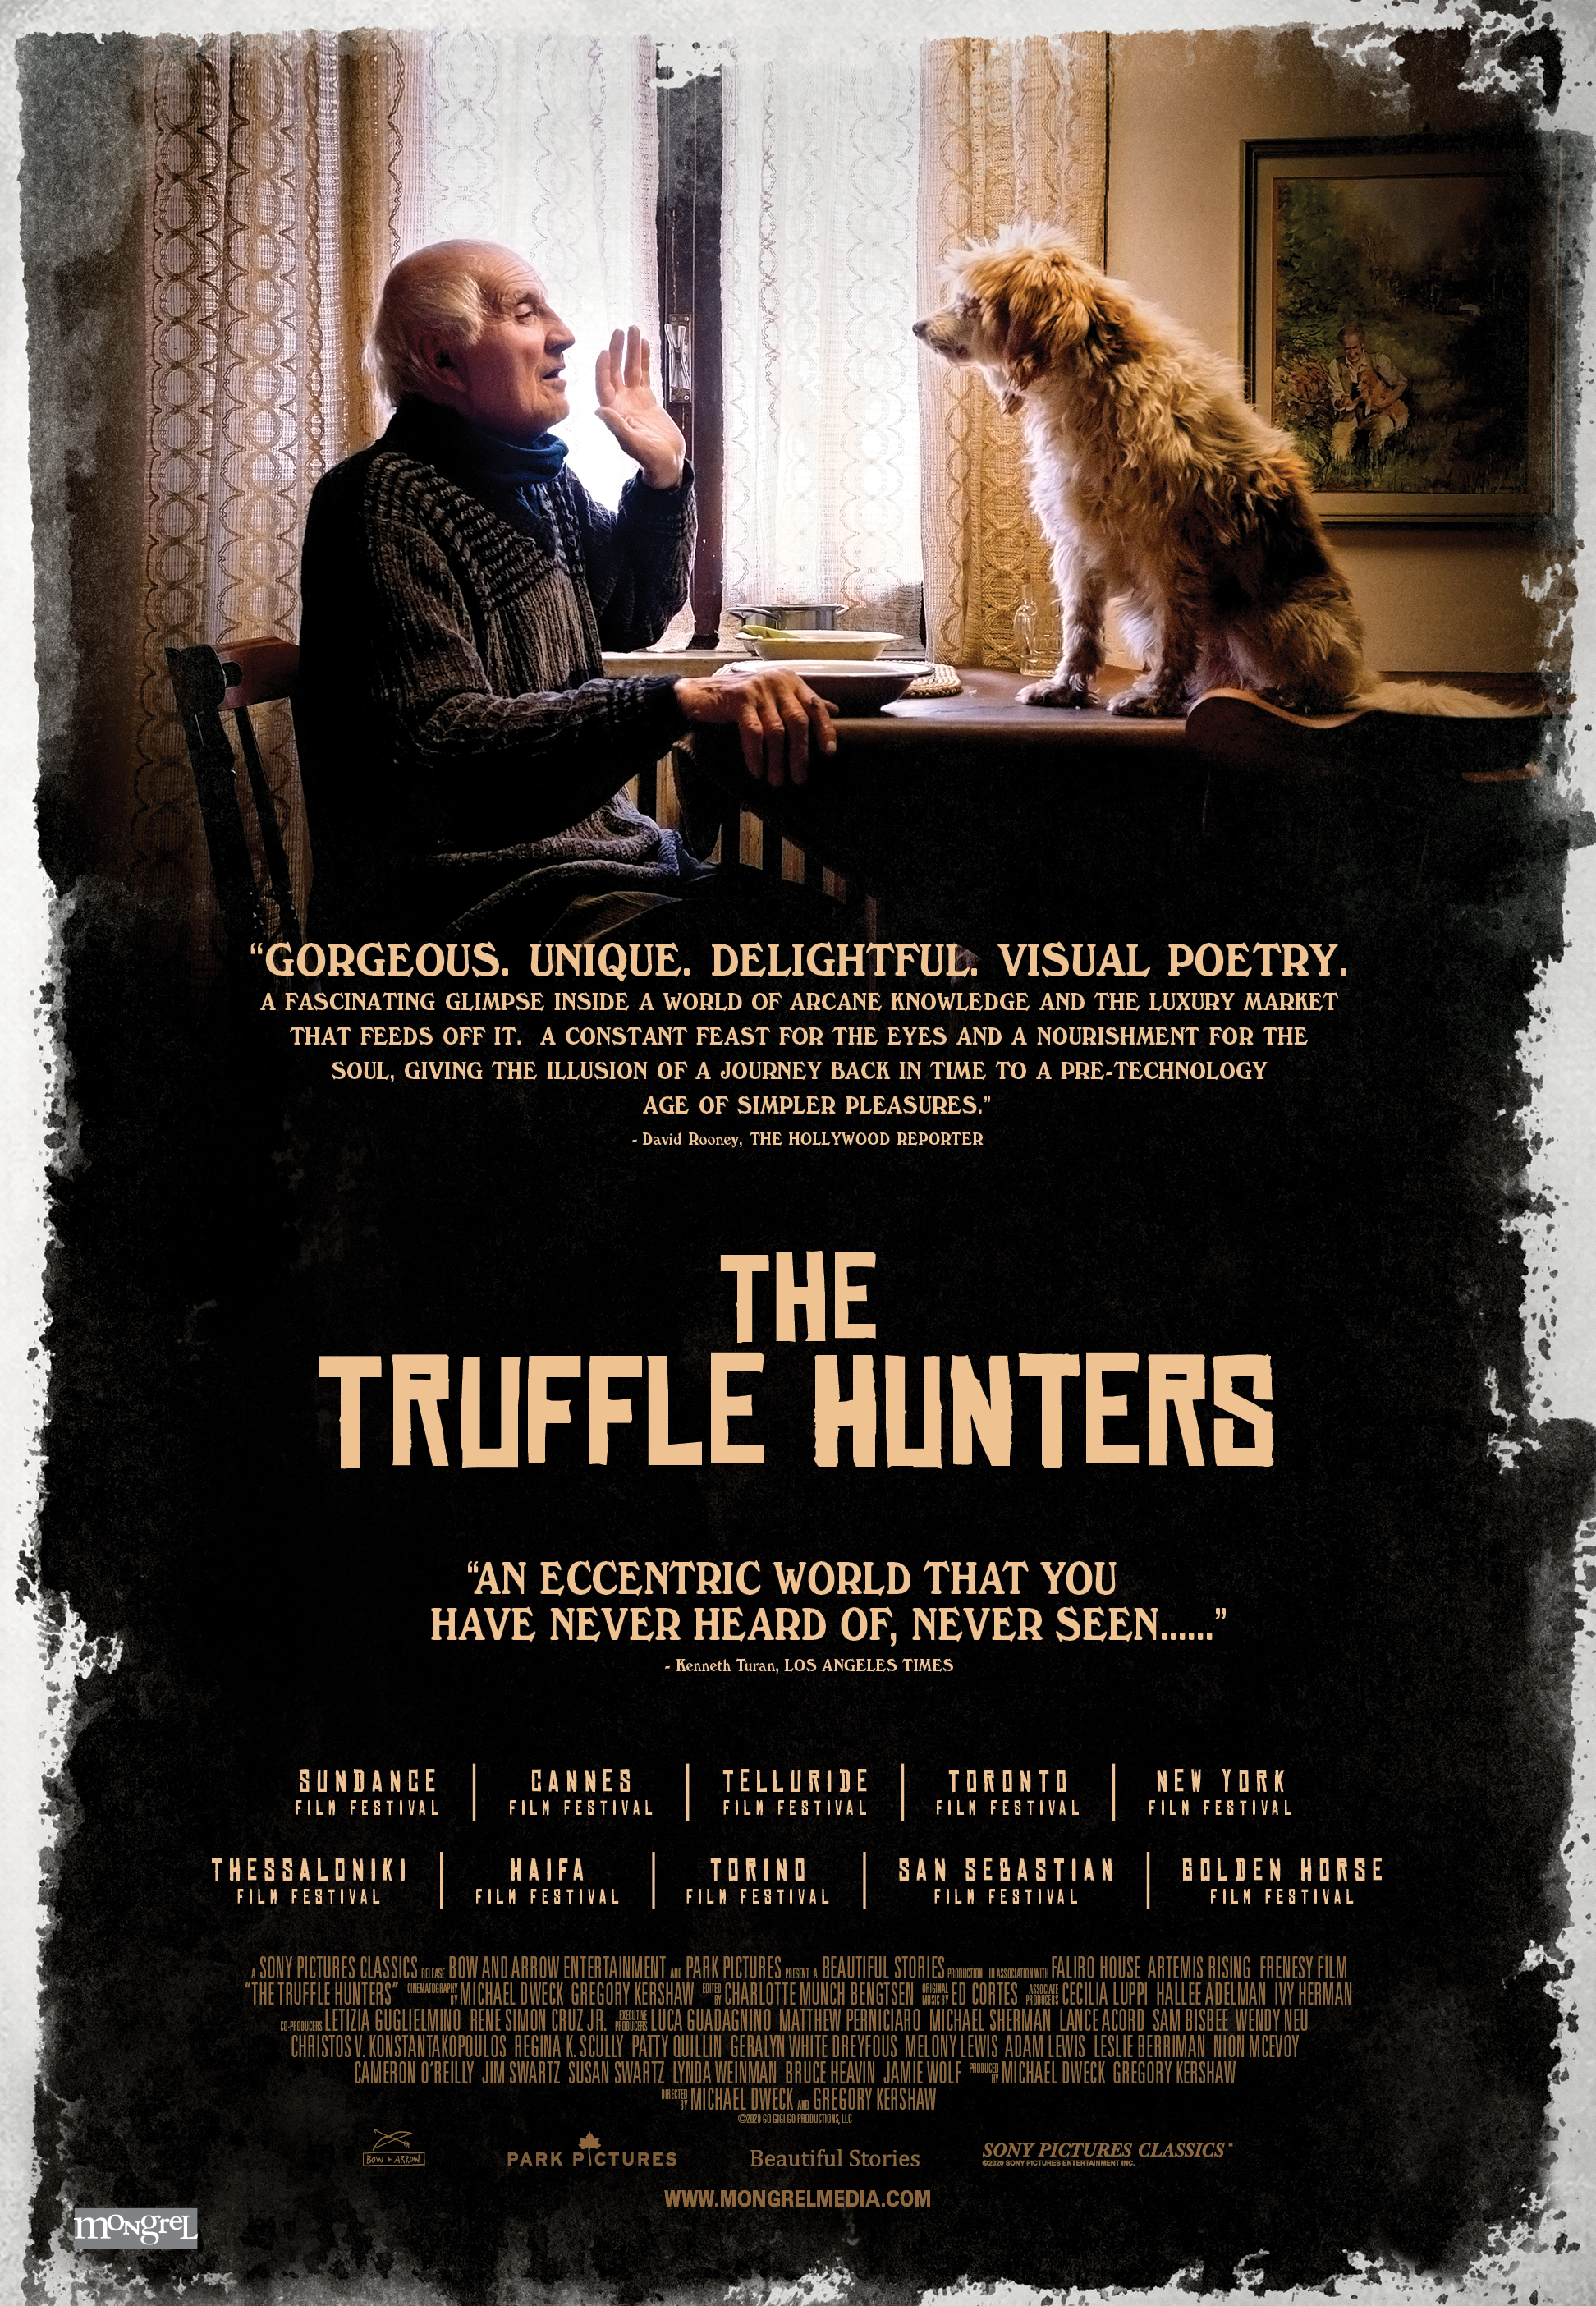 THE TRUFFLE HUNTERS (EST)